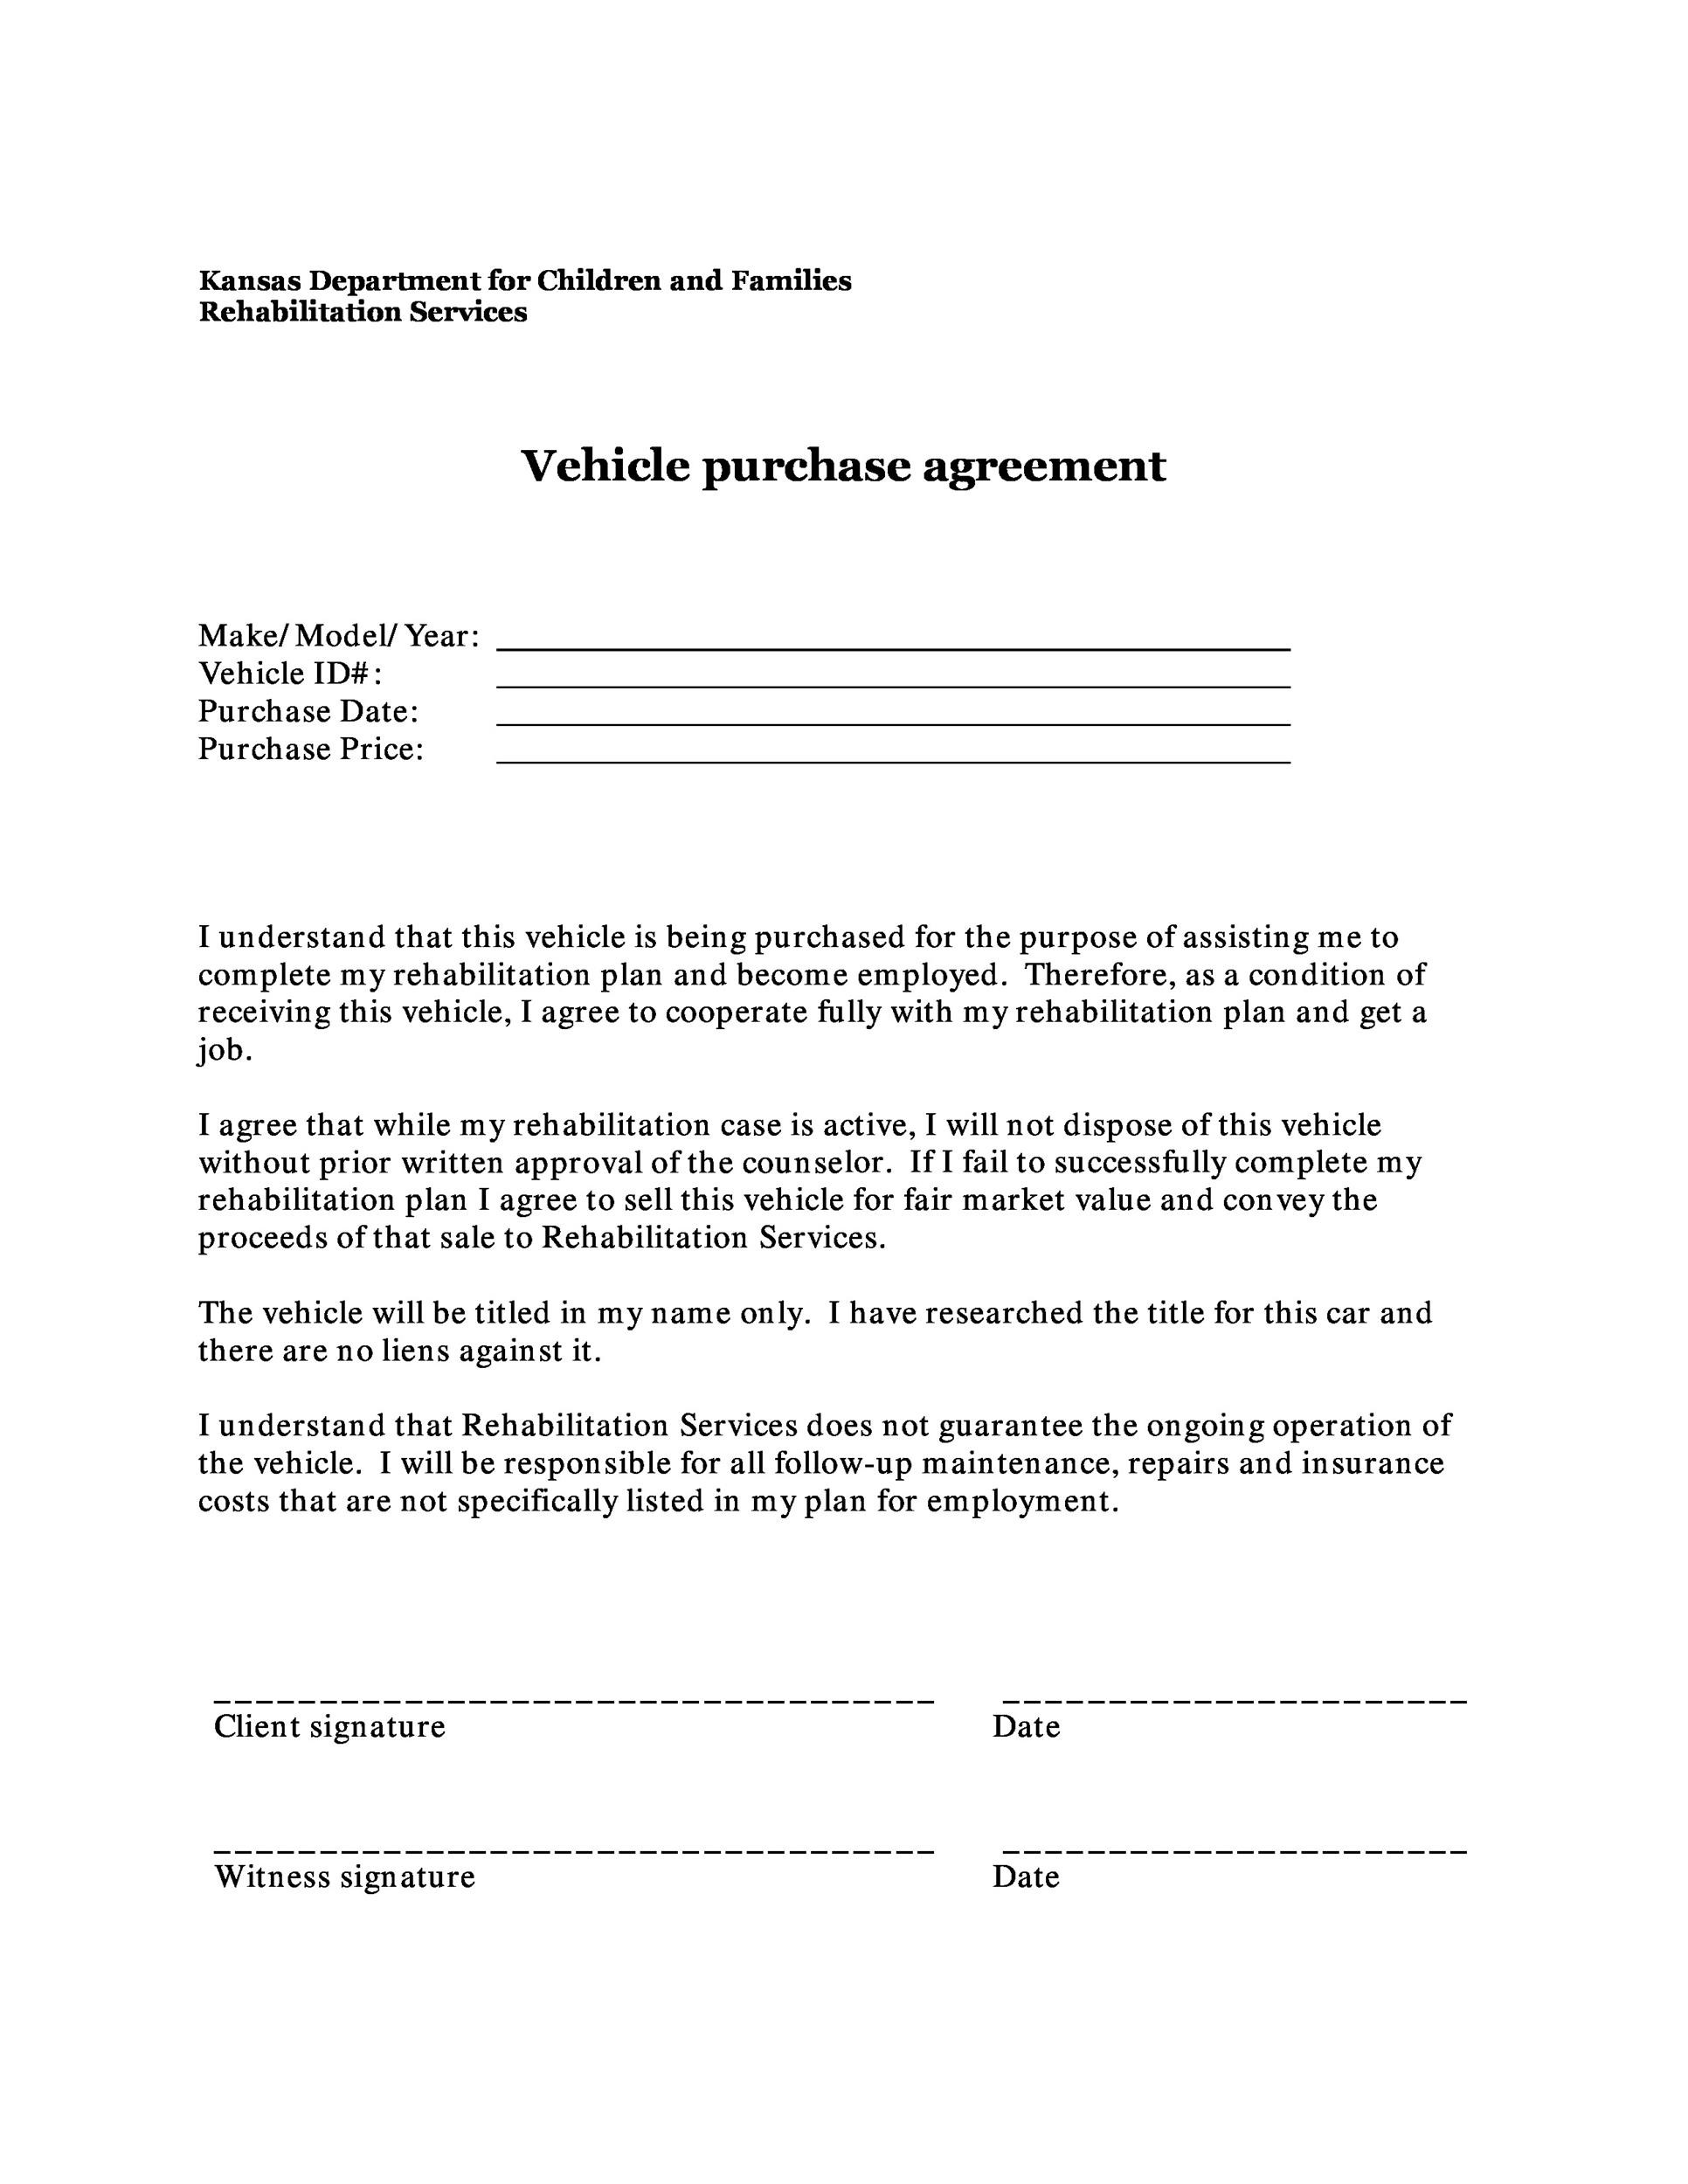 Declaration Form For Buying Property